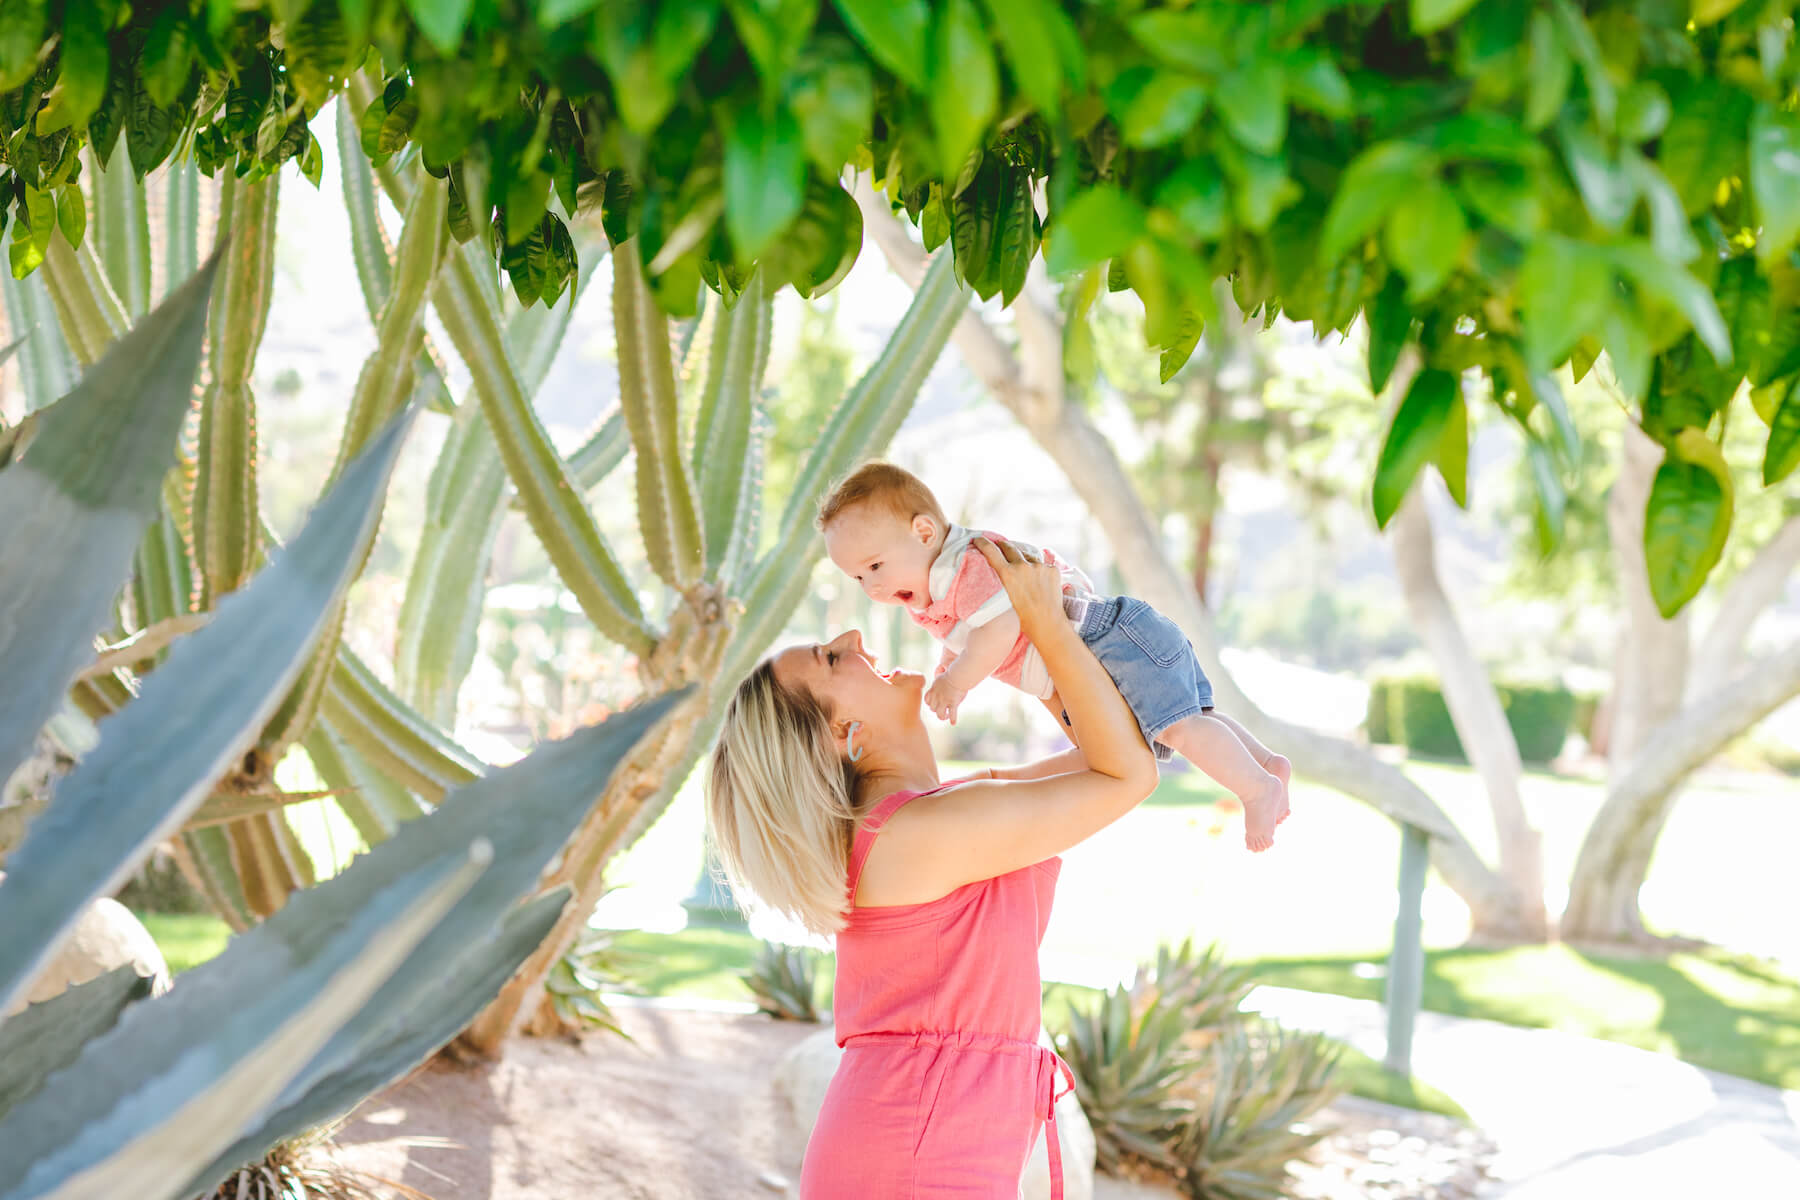 Palm Springs California United States Spring Break Baby and Mother